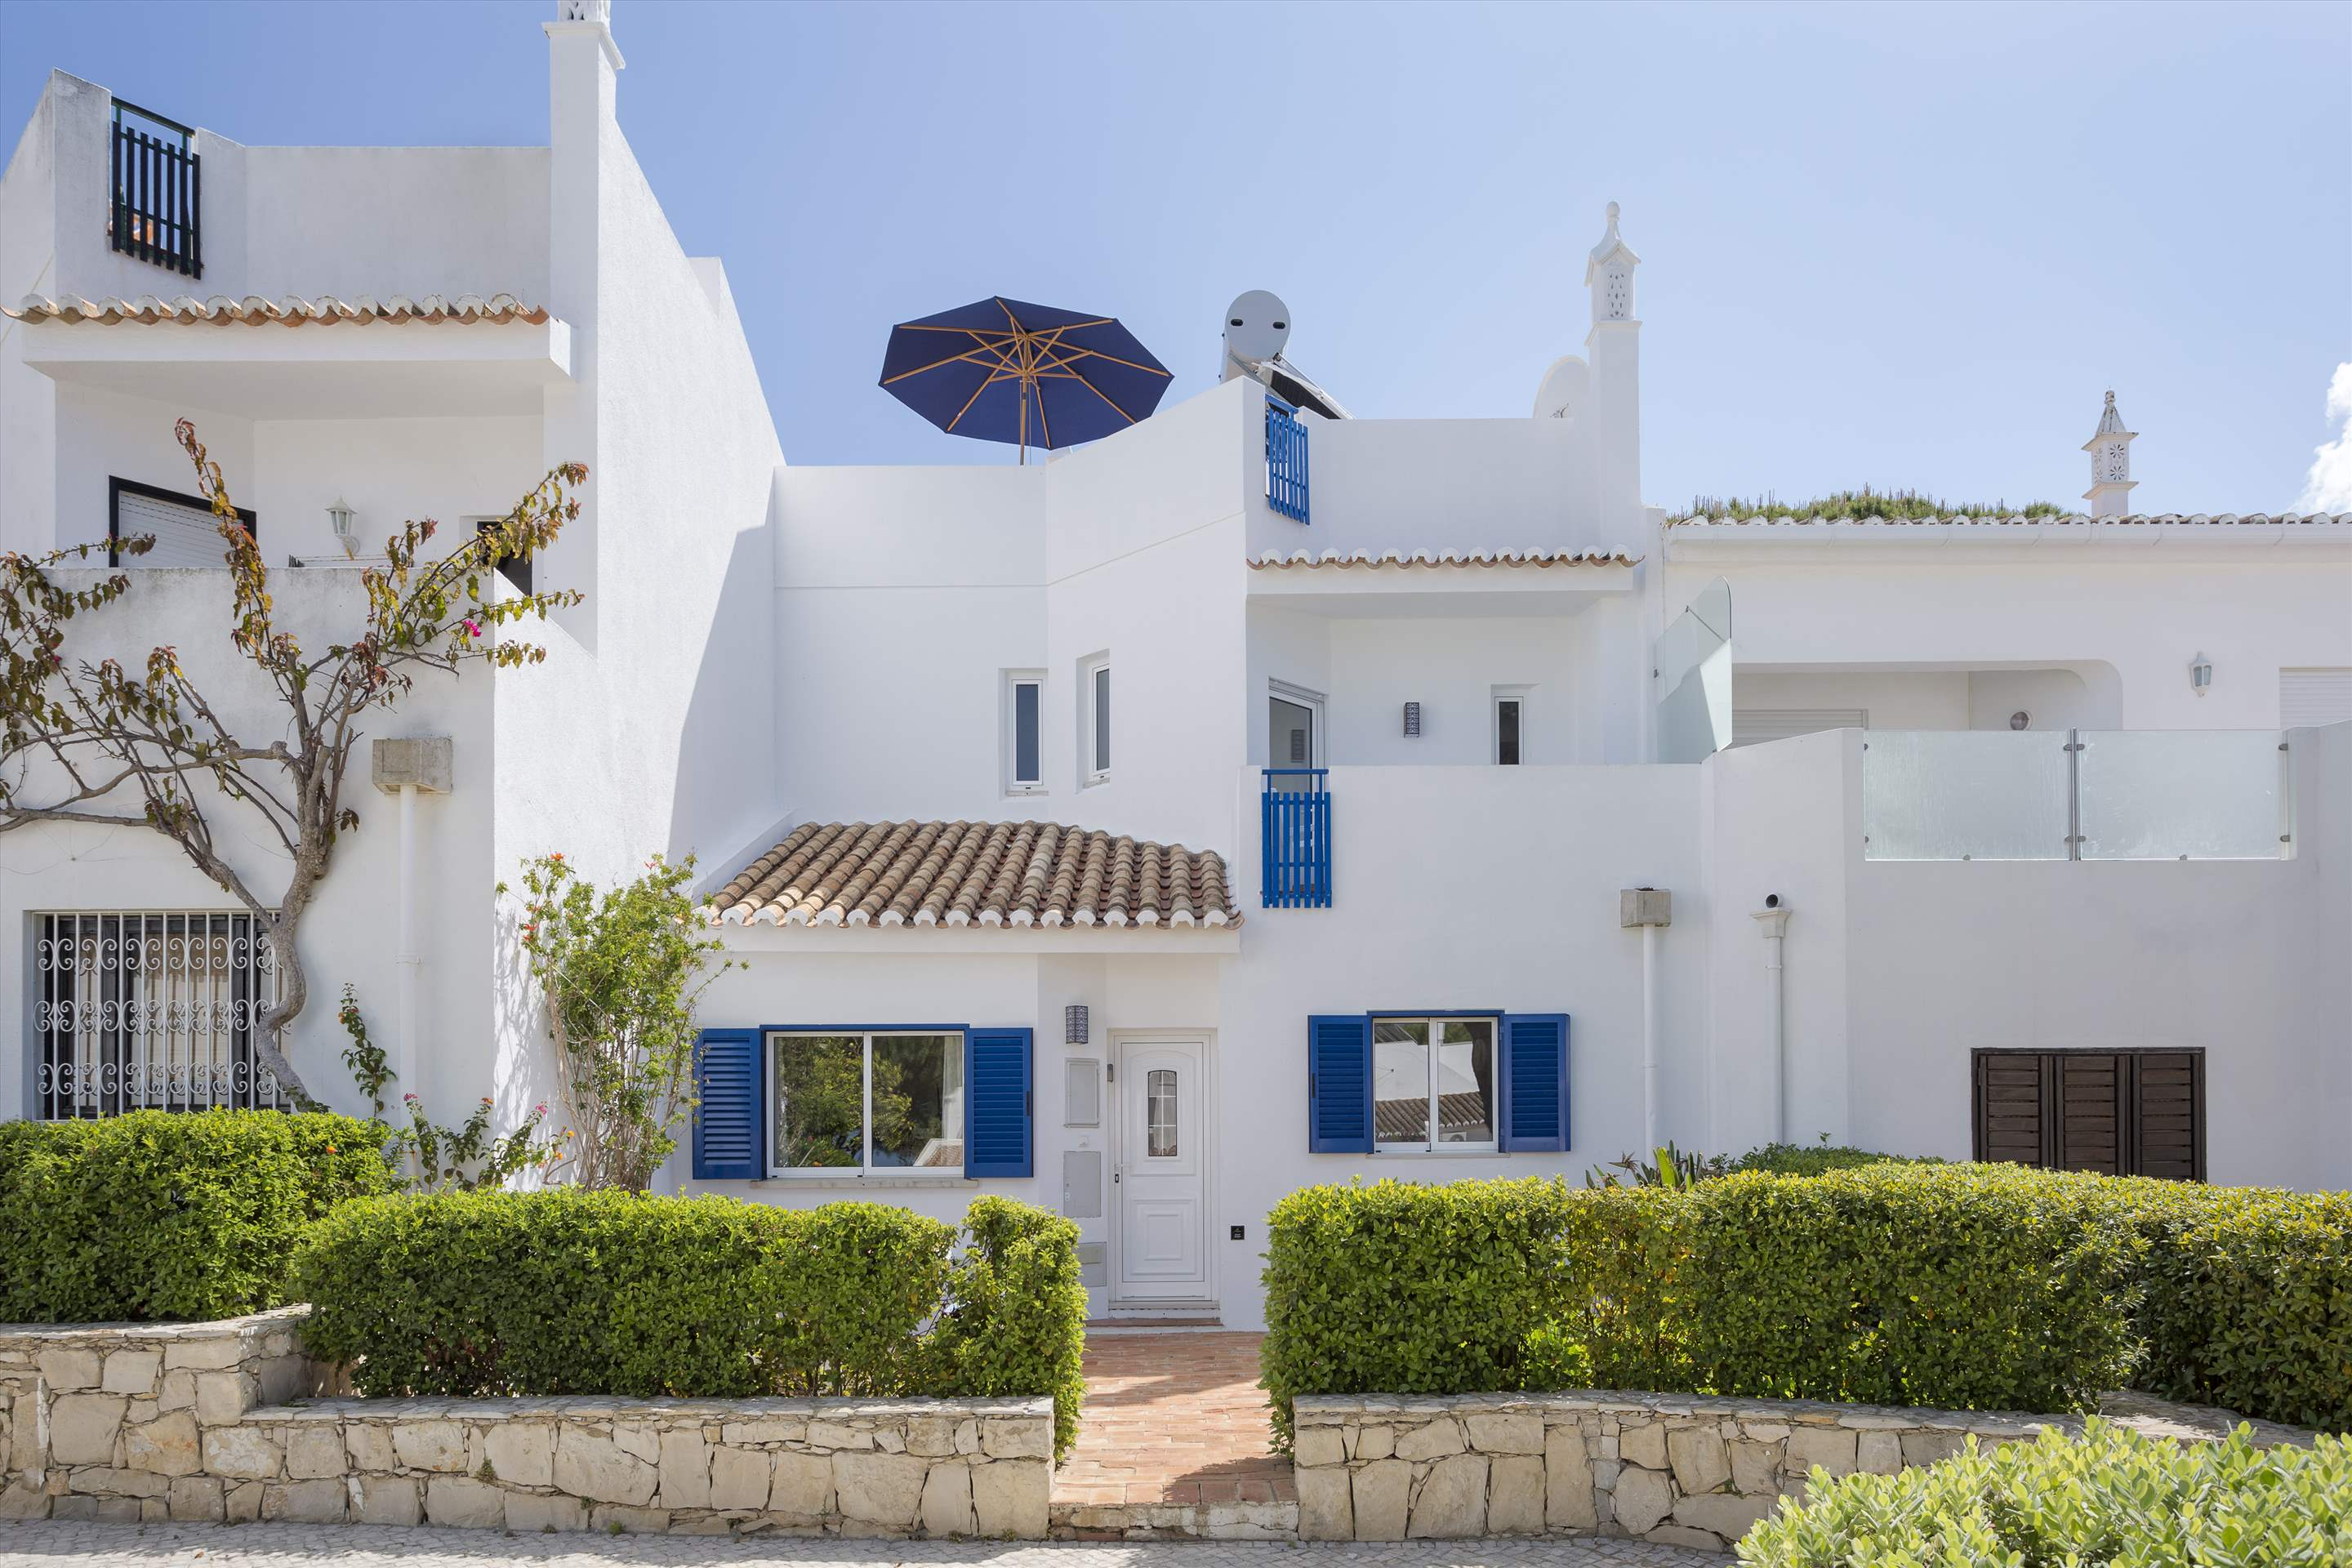 Townhouse Megan, 3 bedroom villa in Vale do Lobo, Algarve